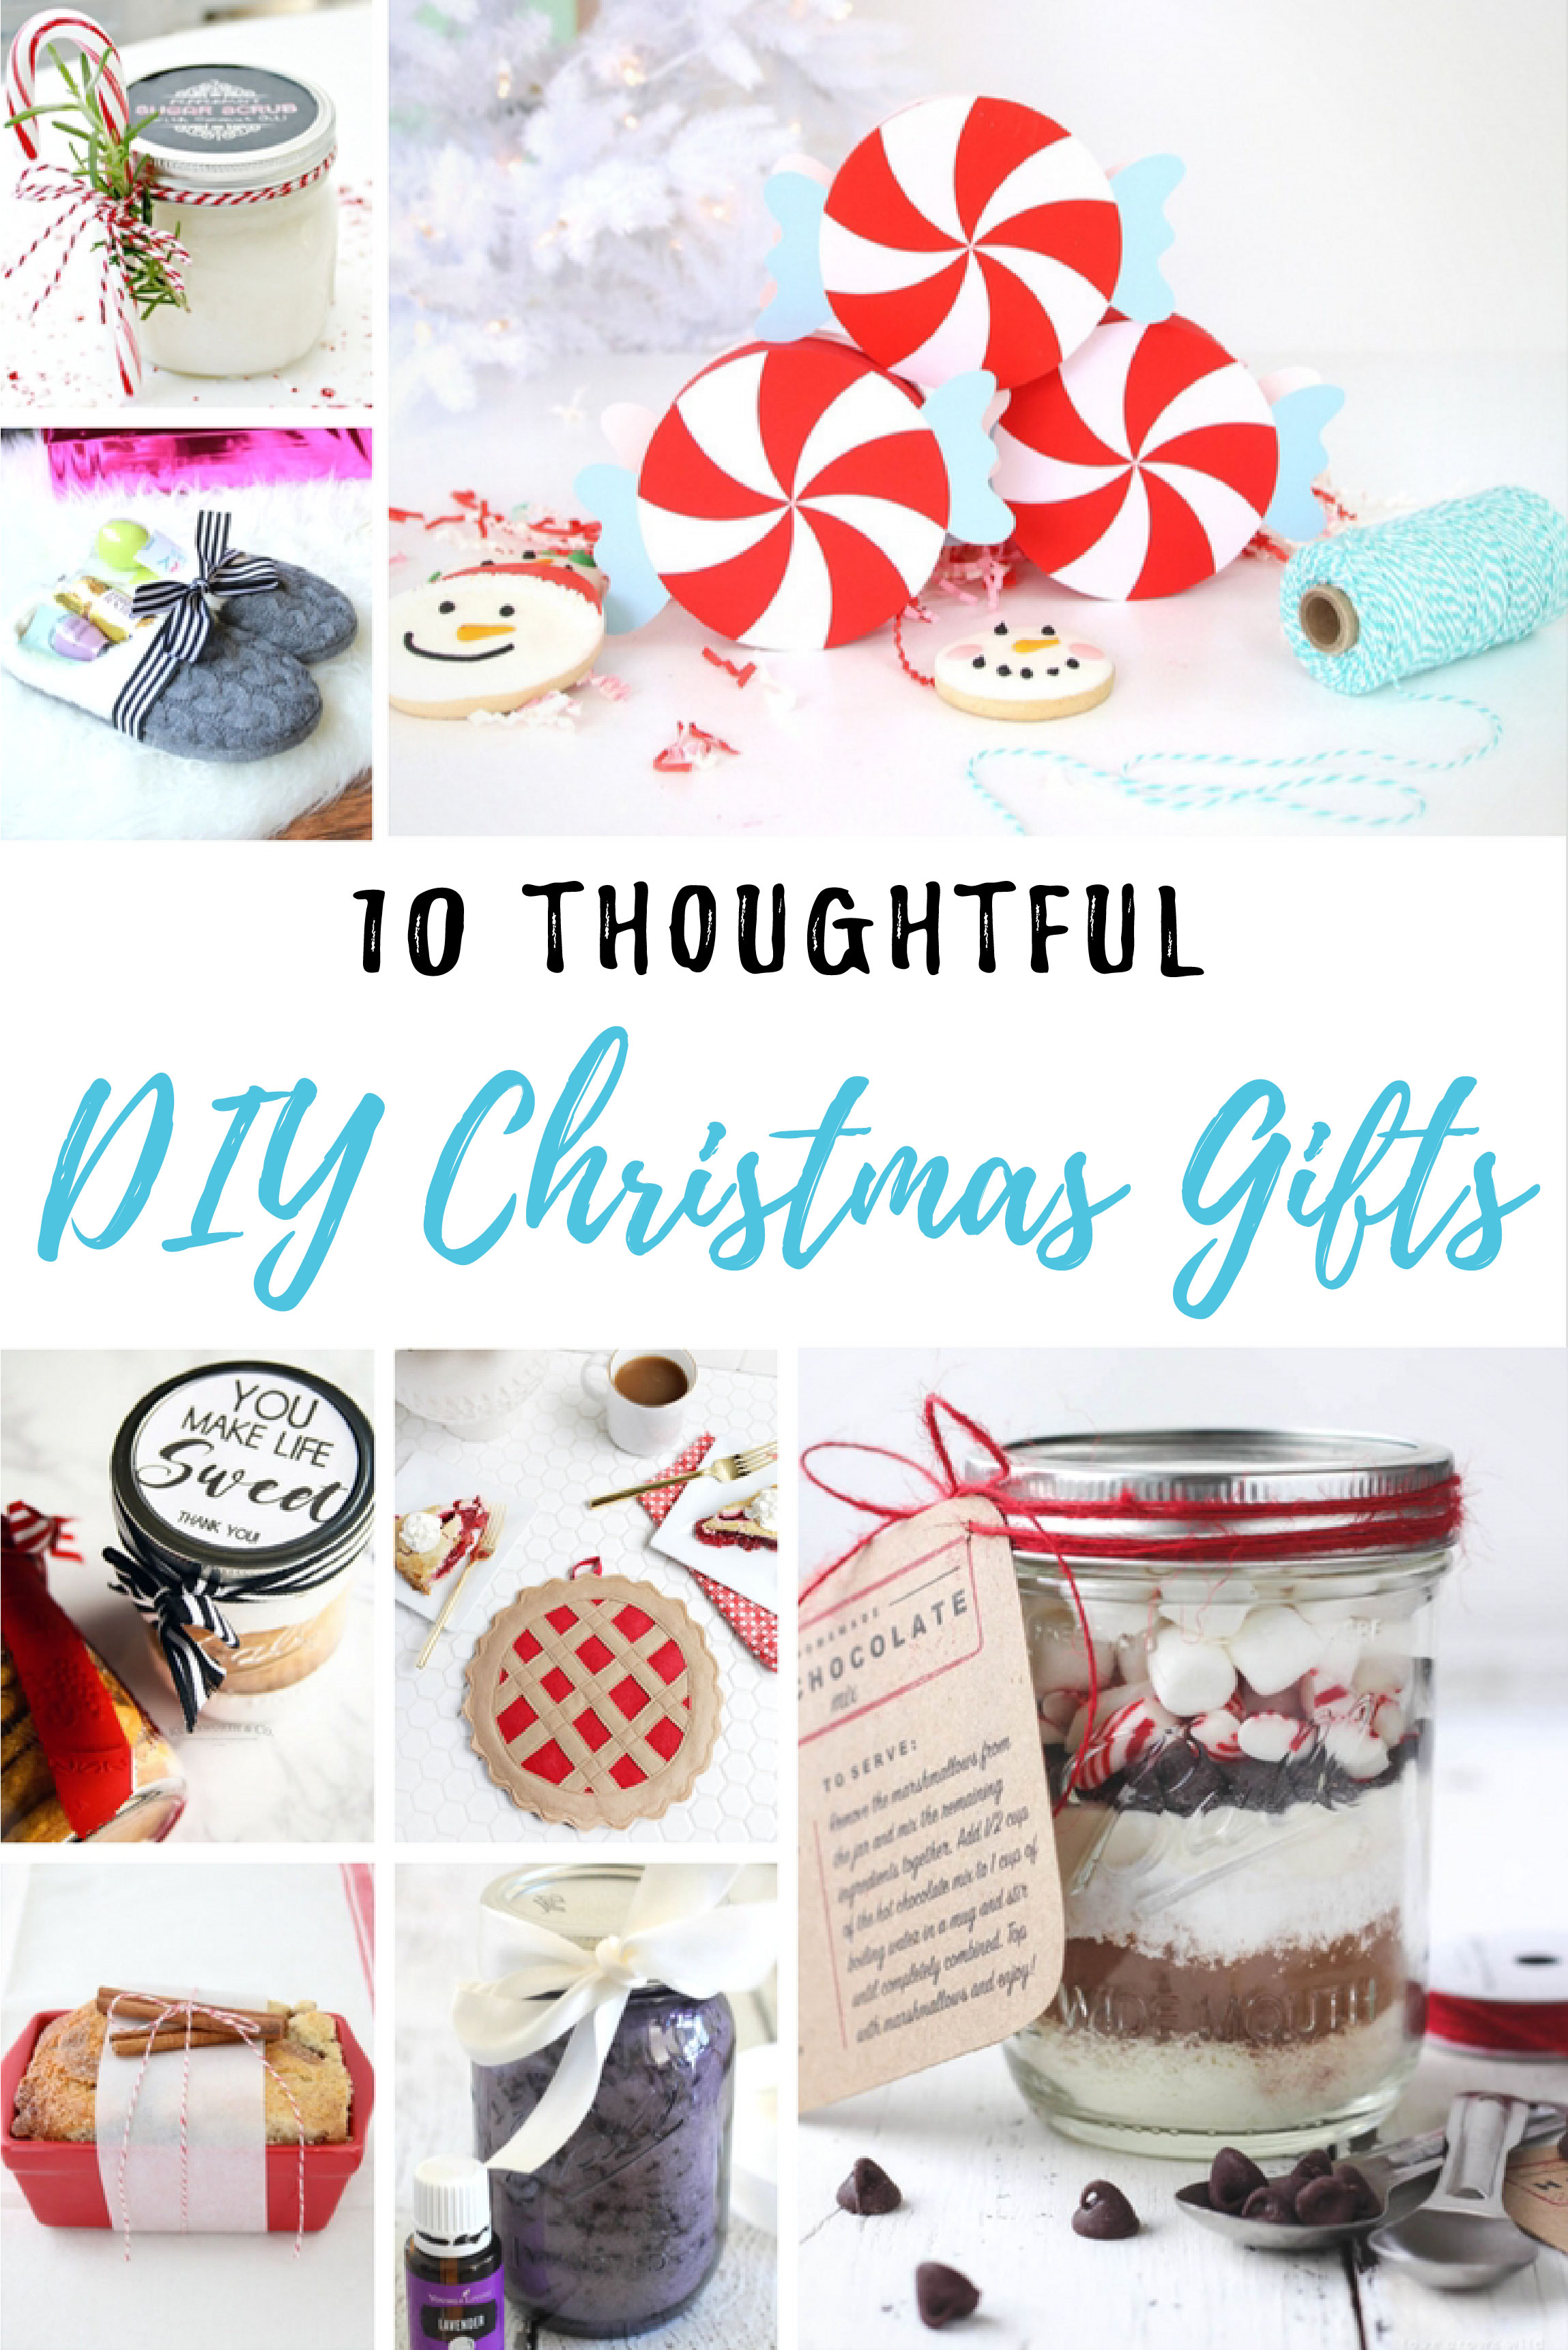 10 Thoughtful DIY Christmas Gifts